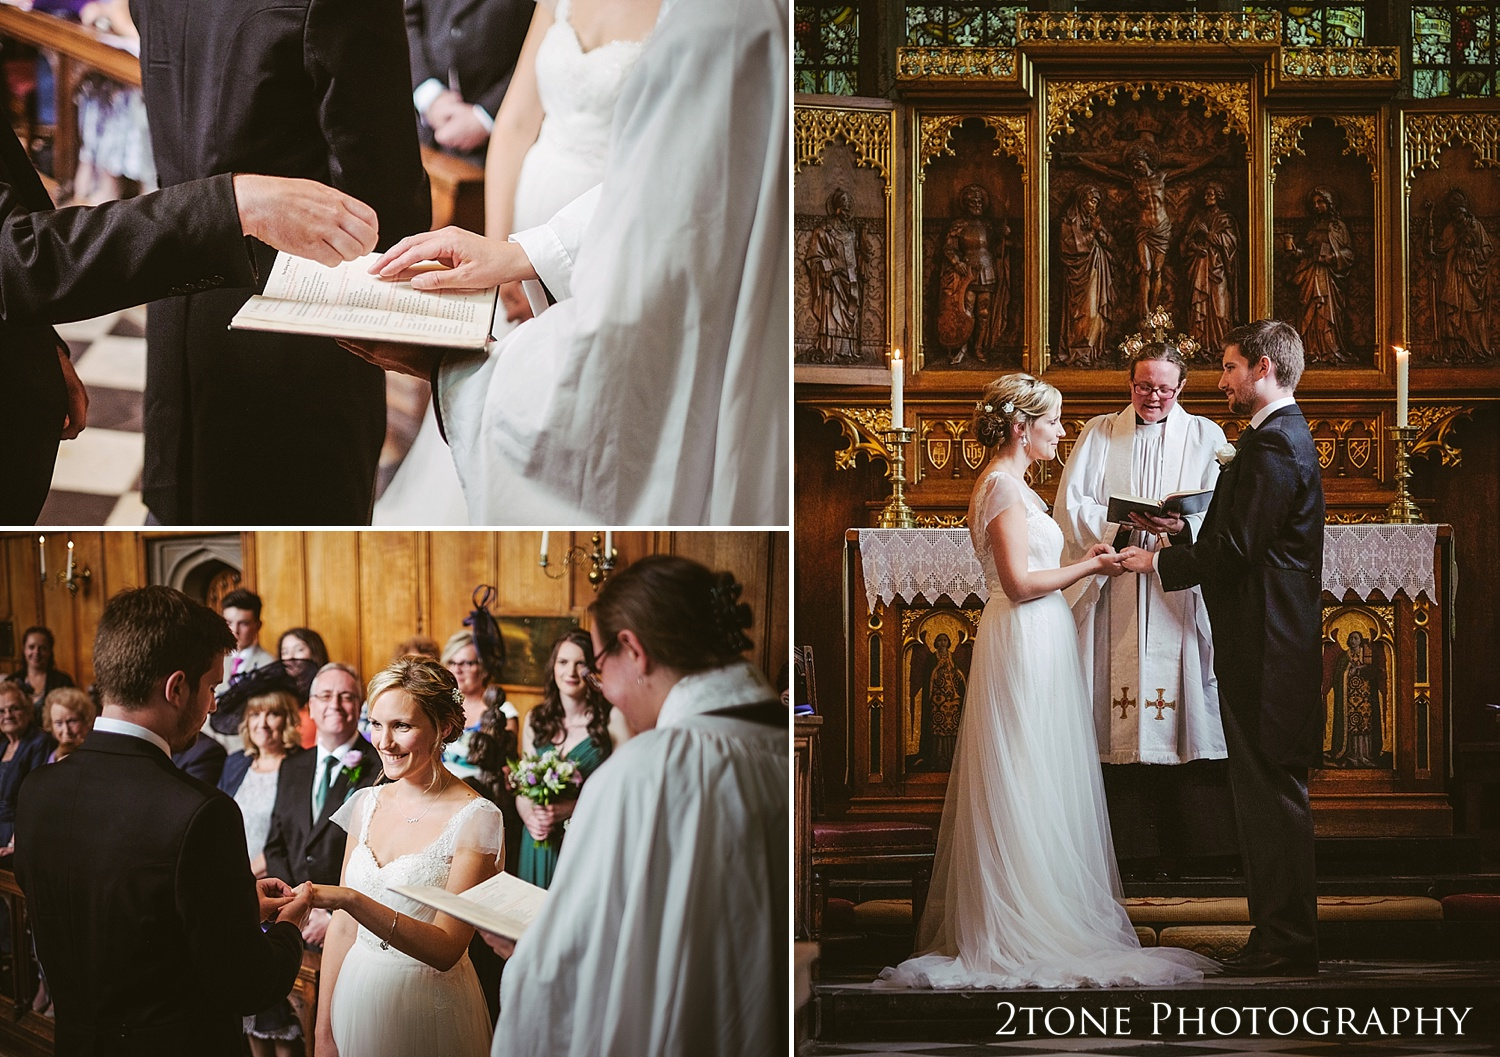 Natural wedding photography in Durham by Durham based wedding photographers www.2tonephotography.co.uk